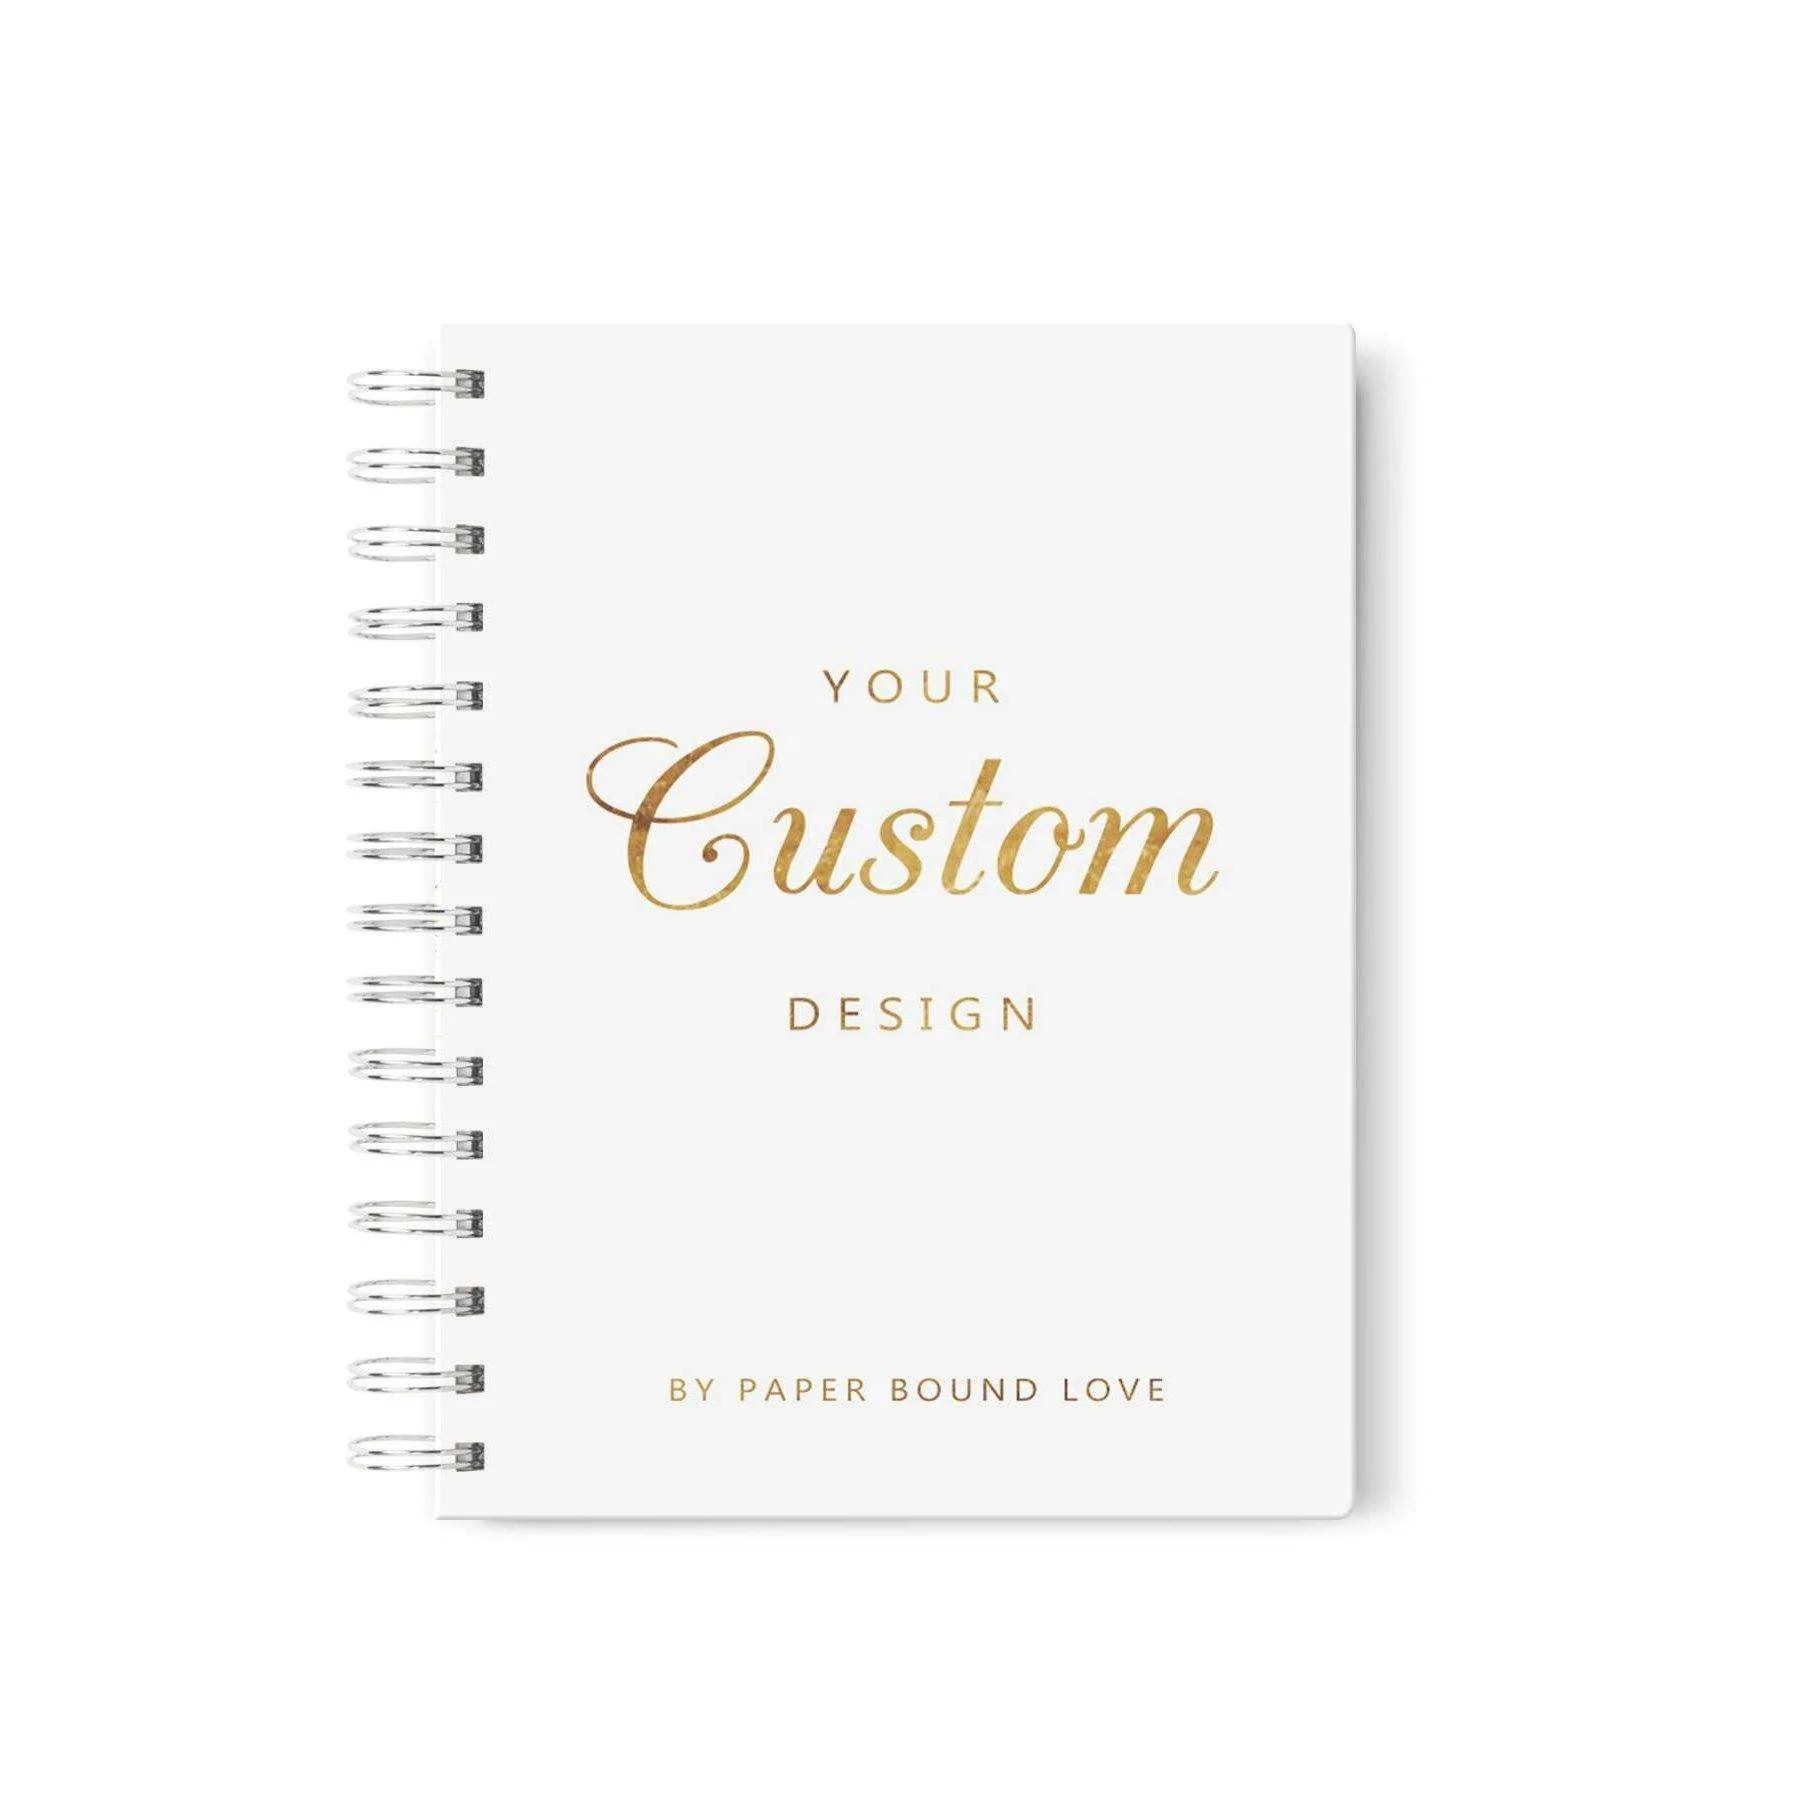 Inspiring Custom Polaroid Guest Book Polaroid Wedding Guest Book Paper Bound Love Polaroid Guest Book Etsy Polaroid Guest Book Pinterest photos Polaroid Guest Book